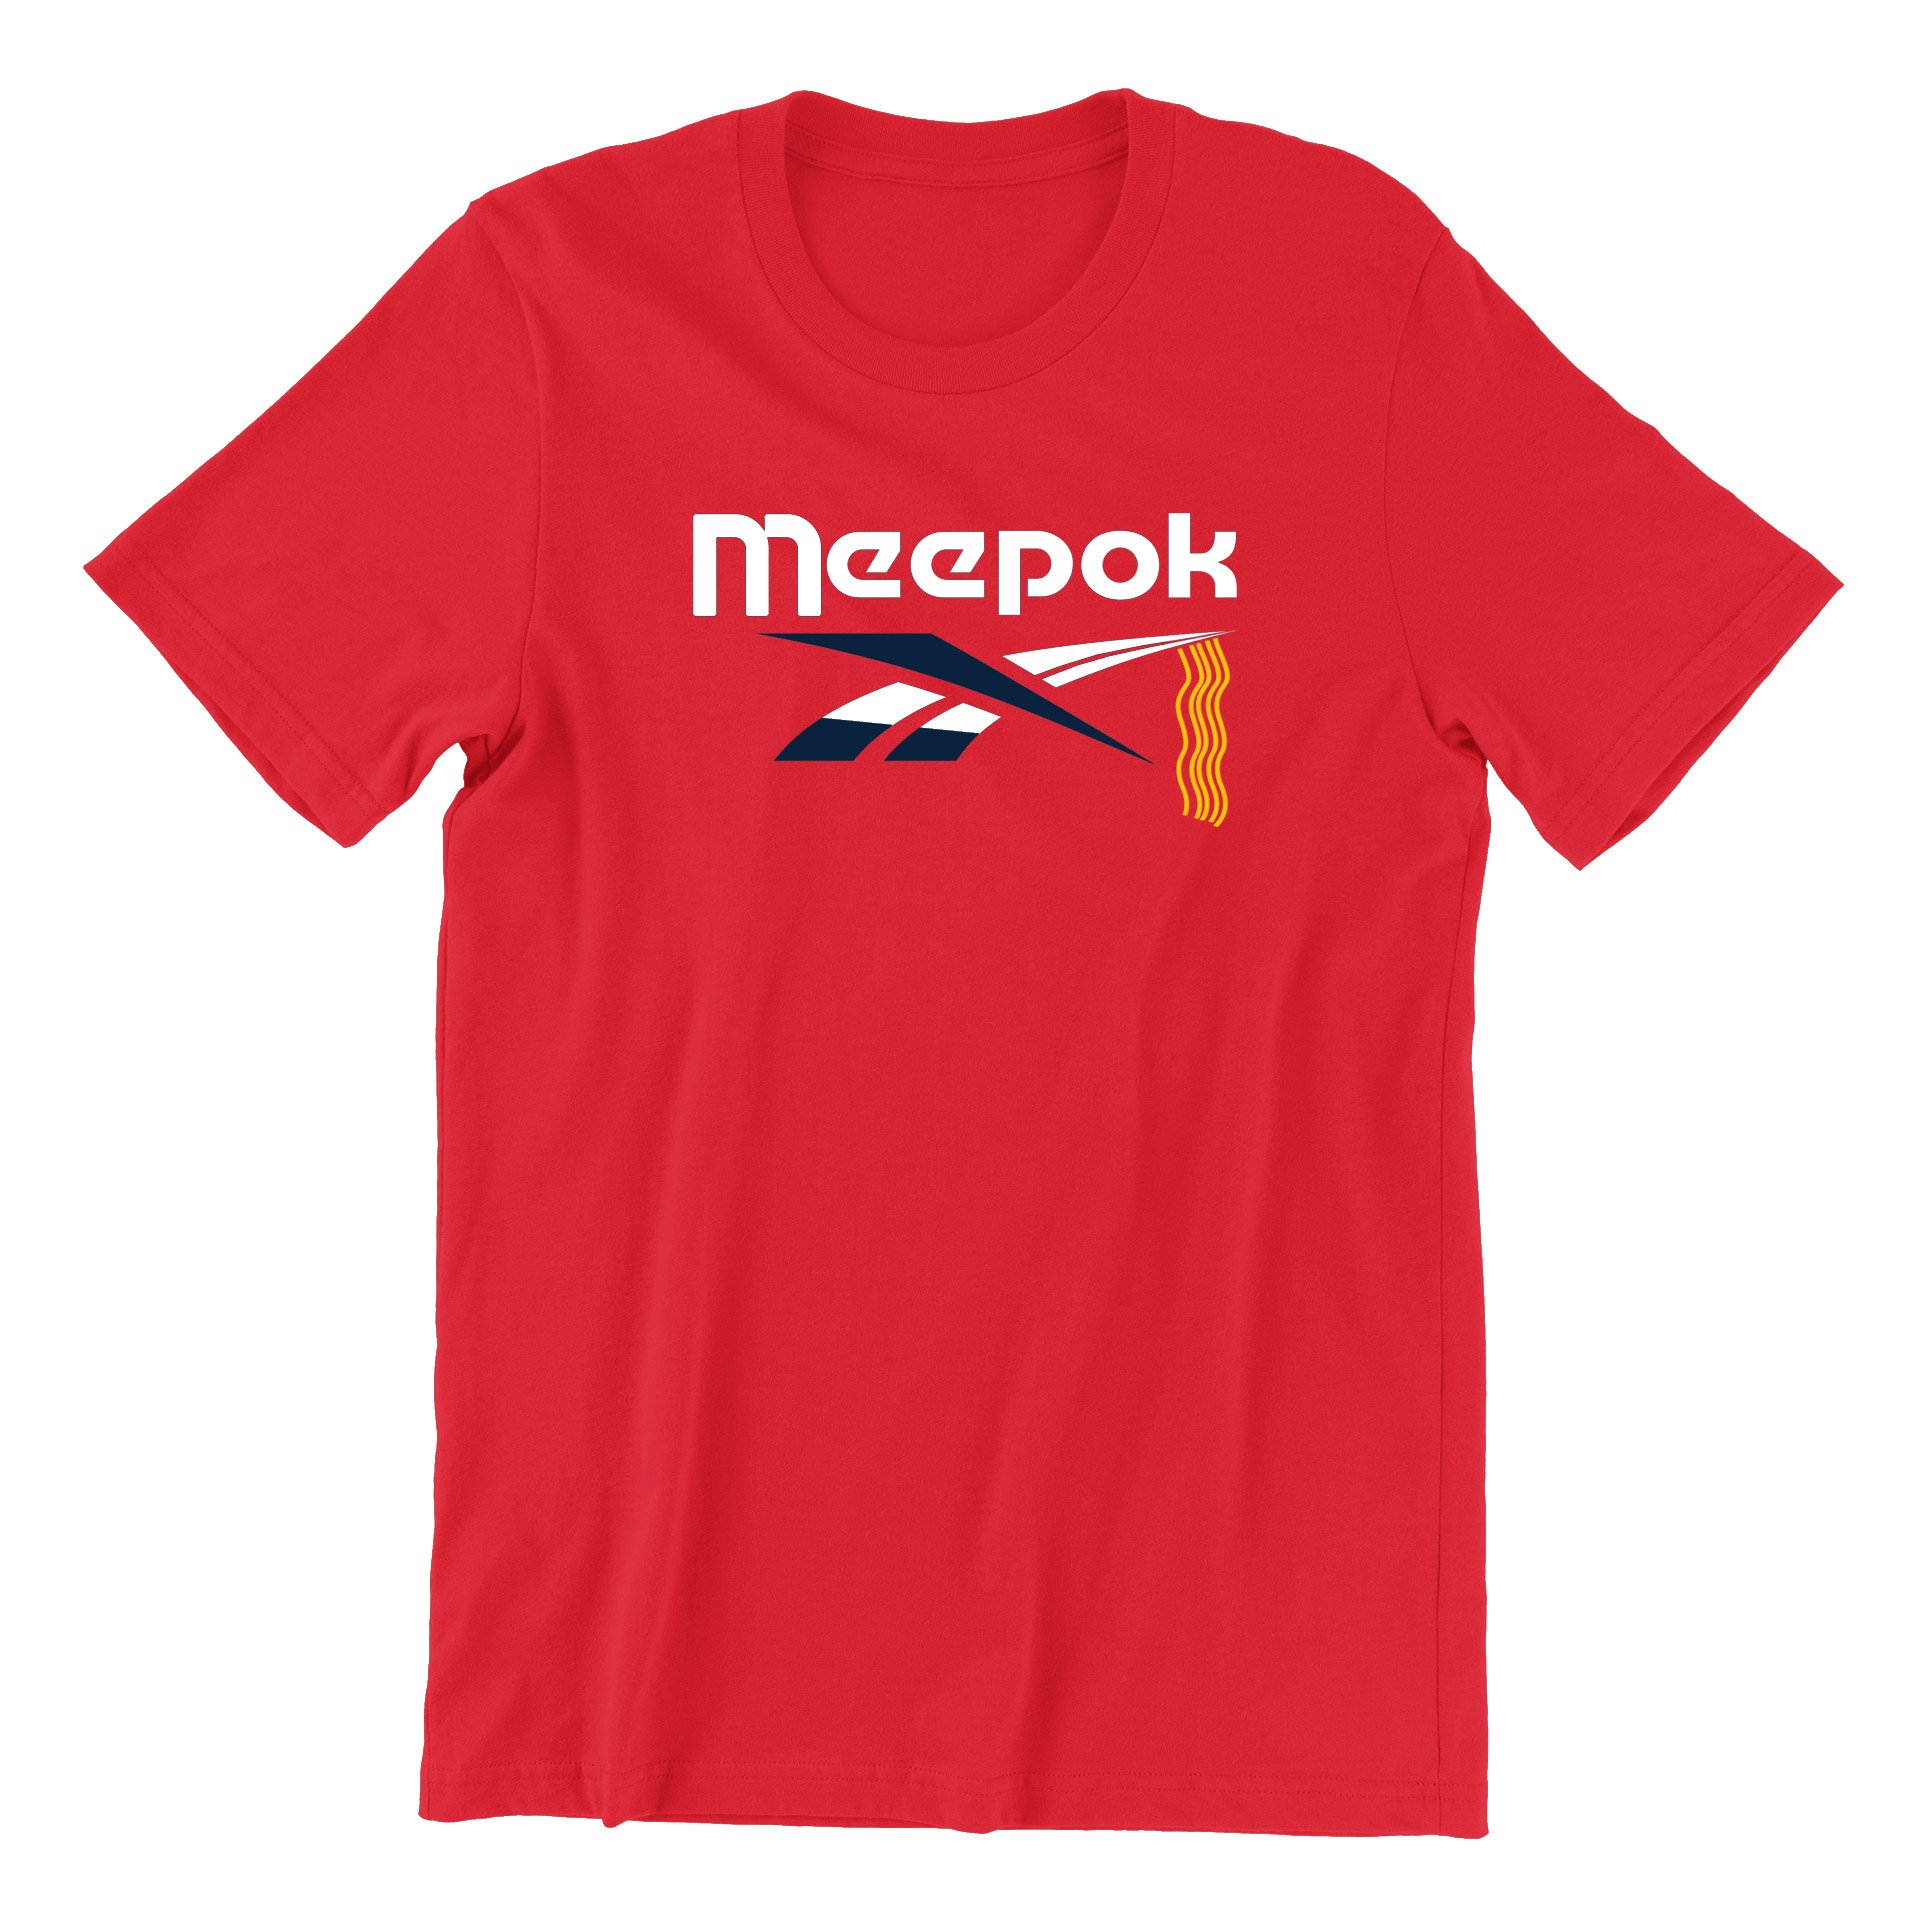 Mee Pok Meepok Short Sleeve T-shirt